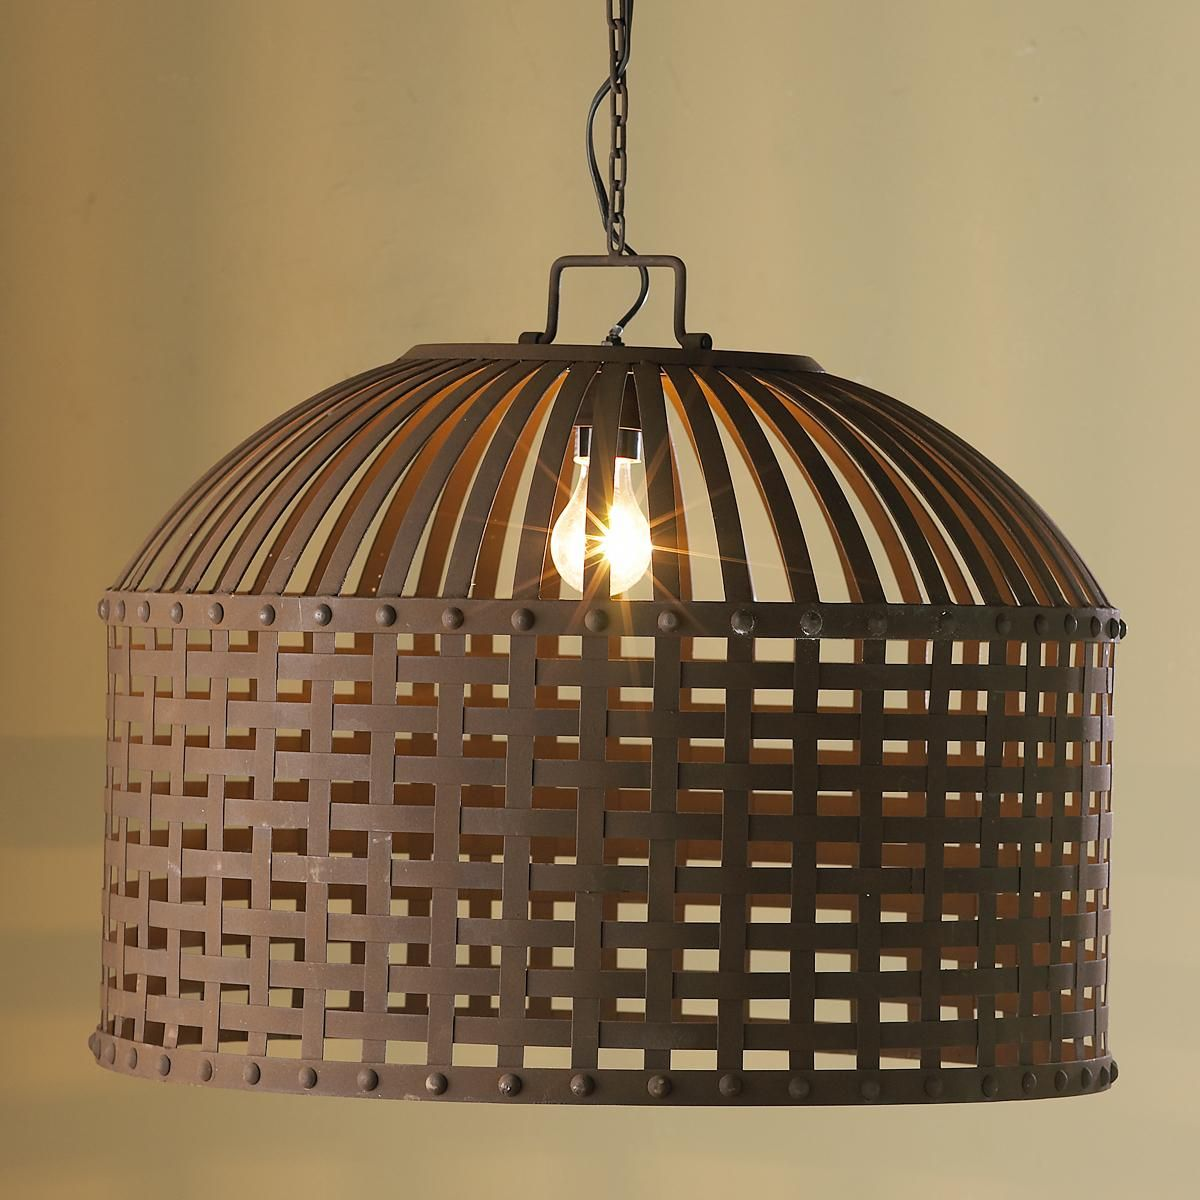 Neo Rustic Kitchen: Rustic Strapped Metal Barrel Lantern: Two Would Be Perfect